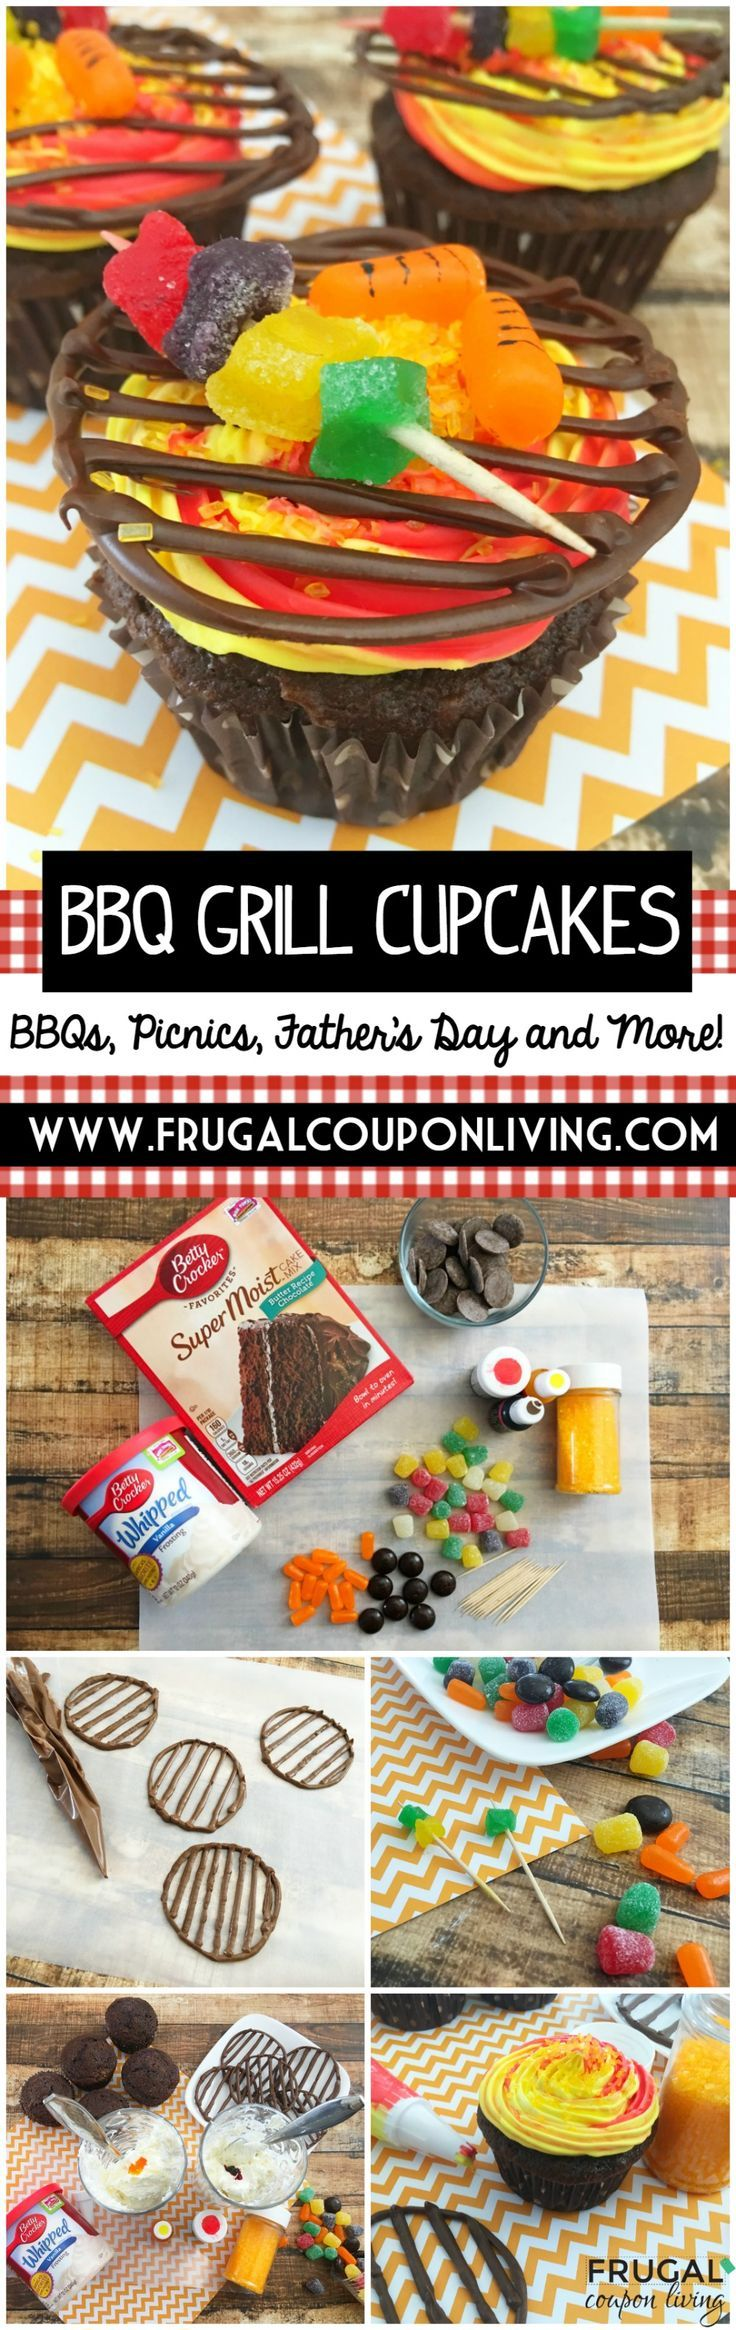 BBQ Grill Cupcakes - Looking for a fun dessert this Father's Day. We love these ...